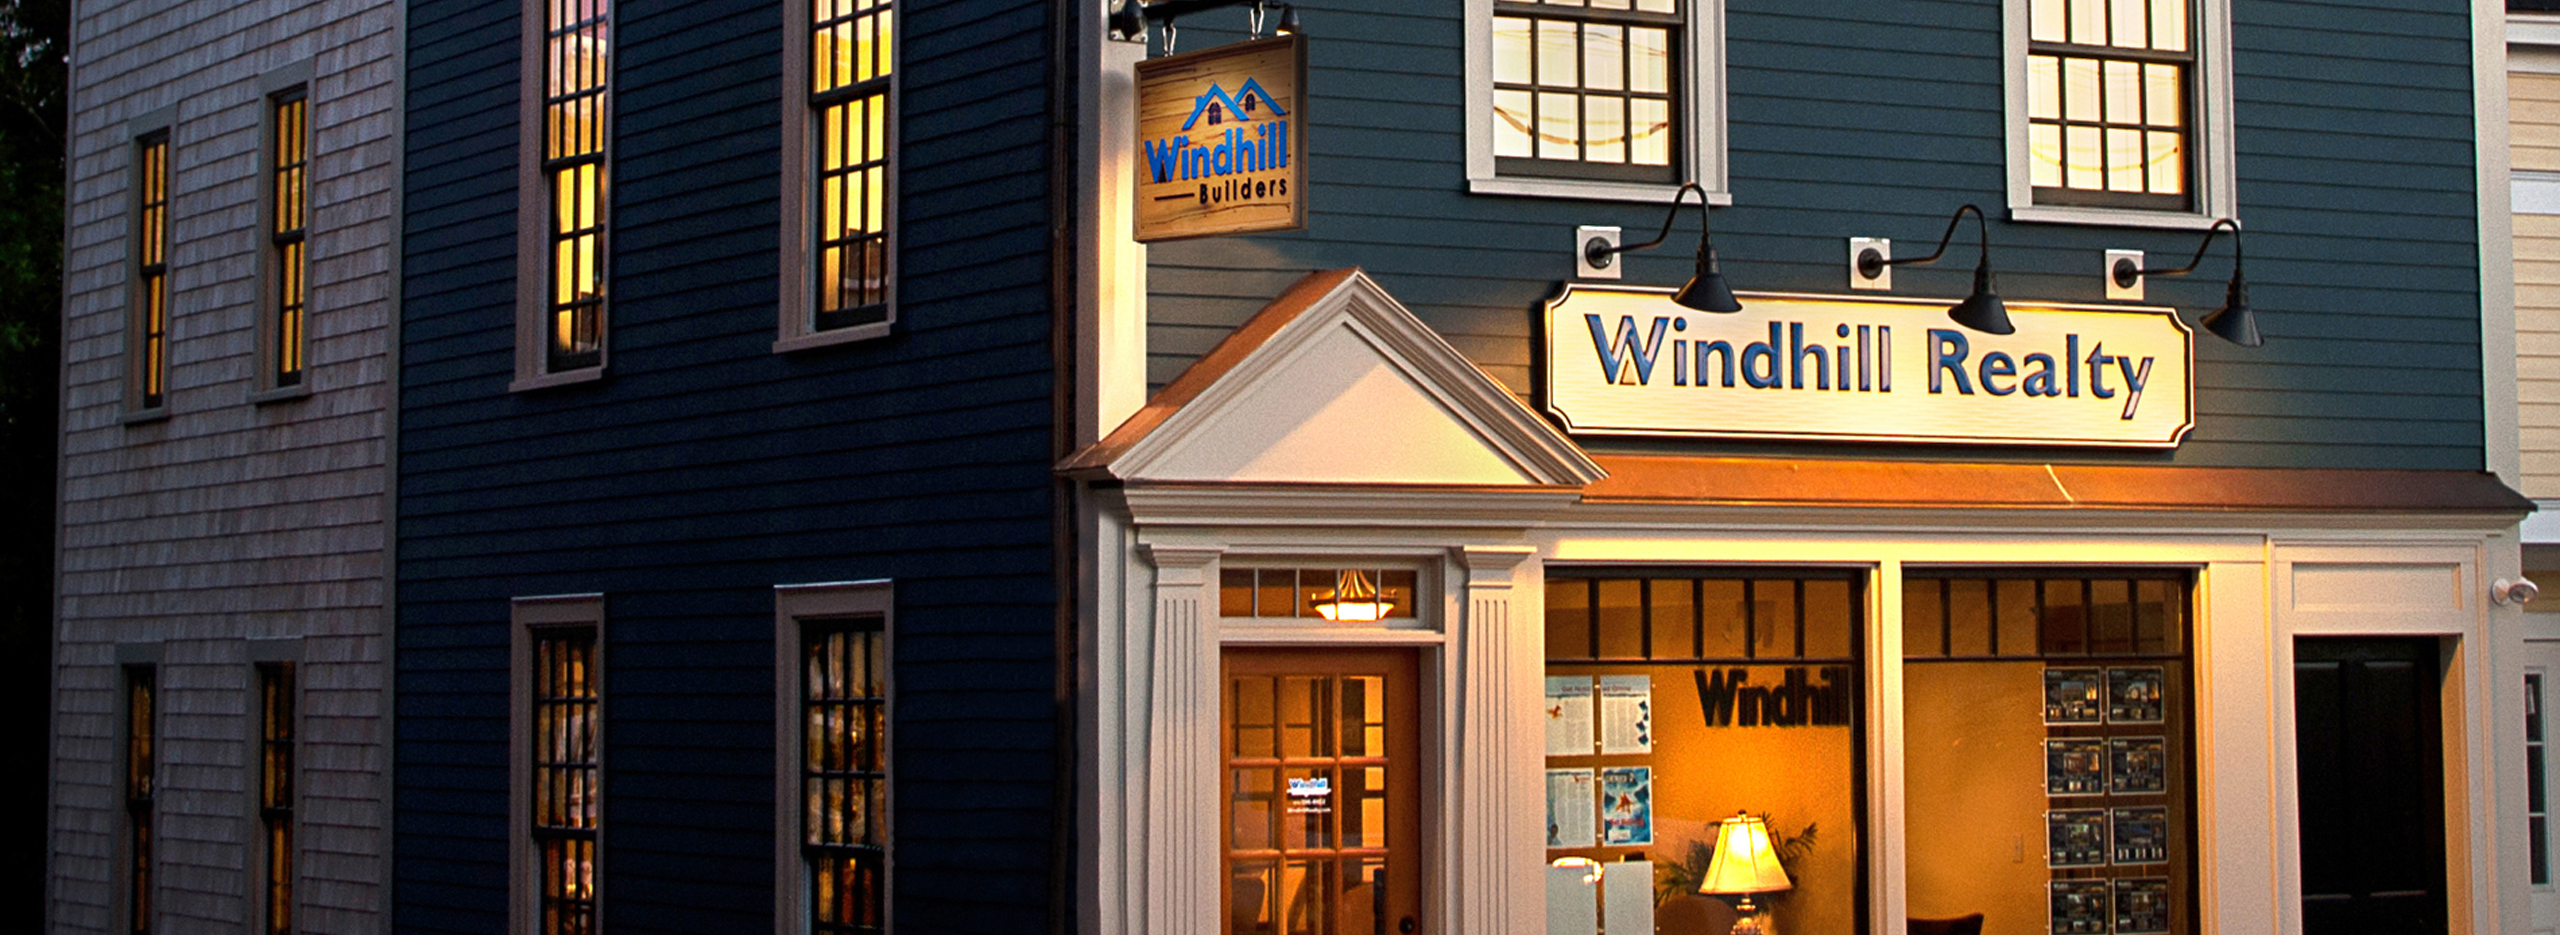 Blog Posts - Windhill Realty